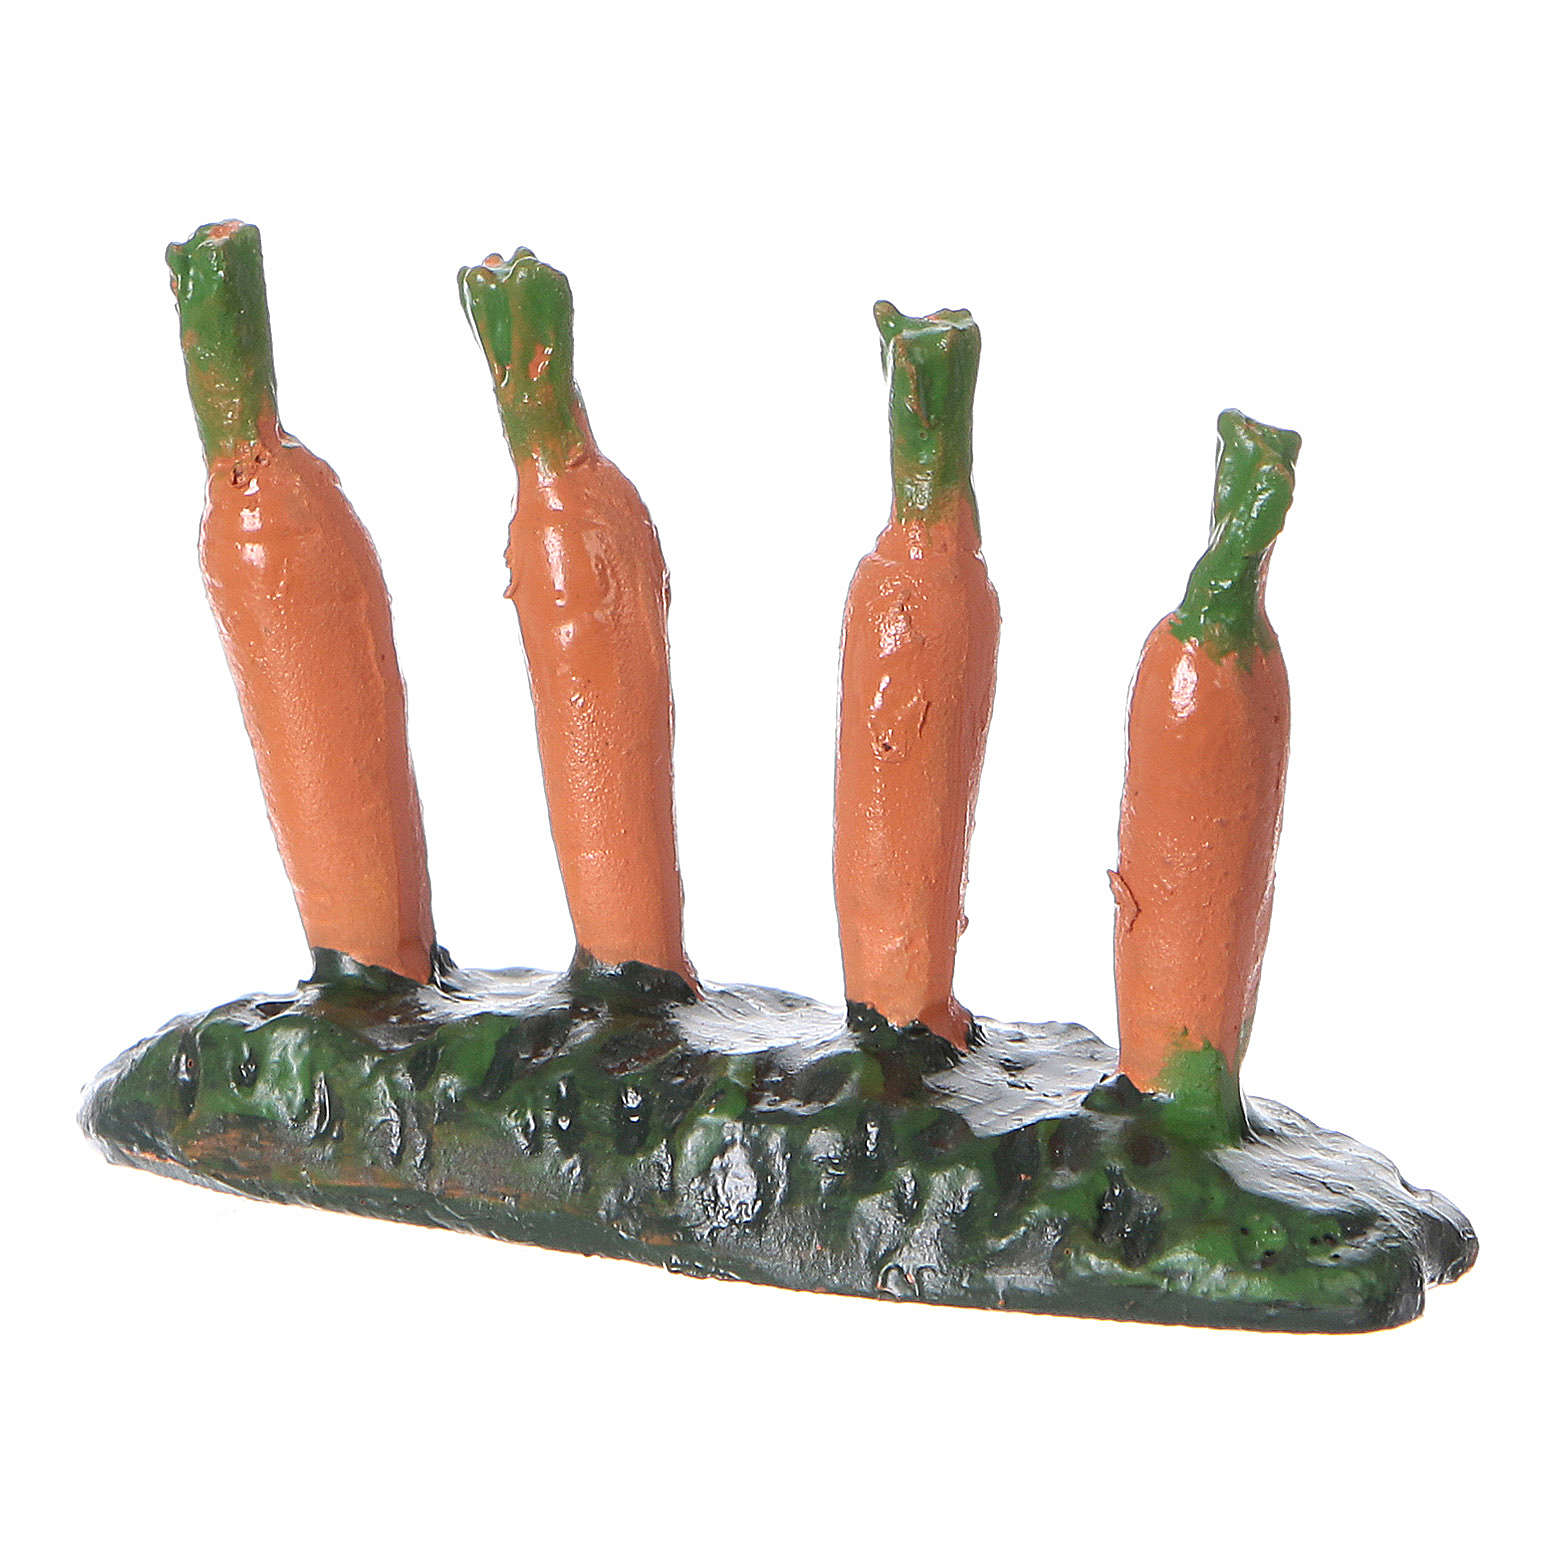 Planted row of carrots 5x5x5 cm, for 7 cm nativity 4